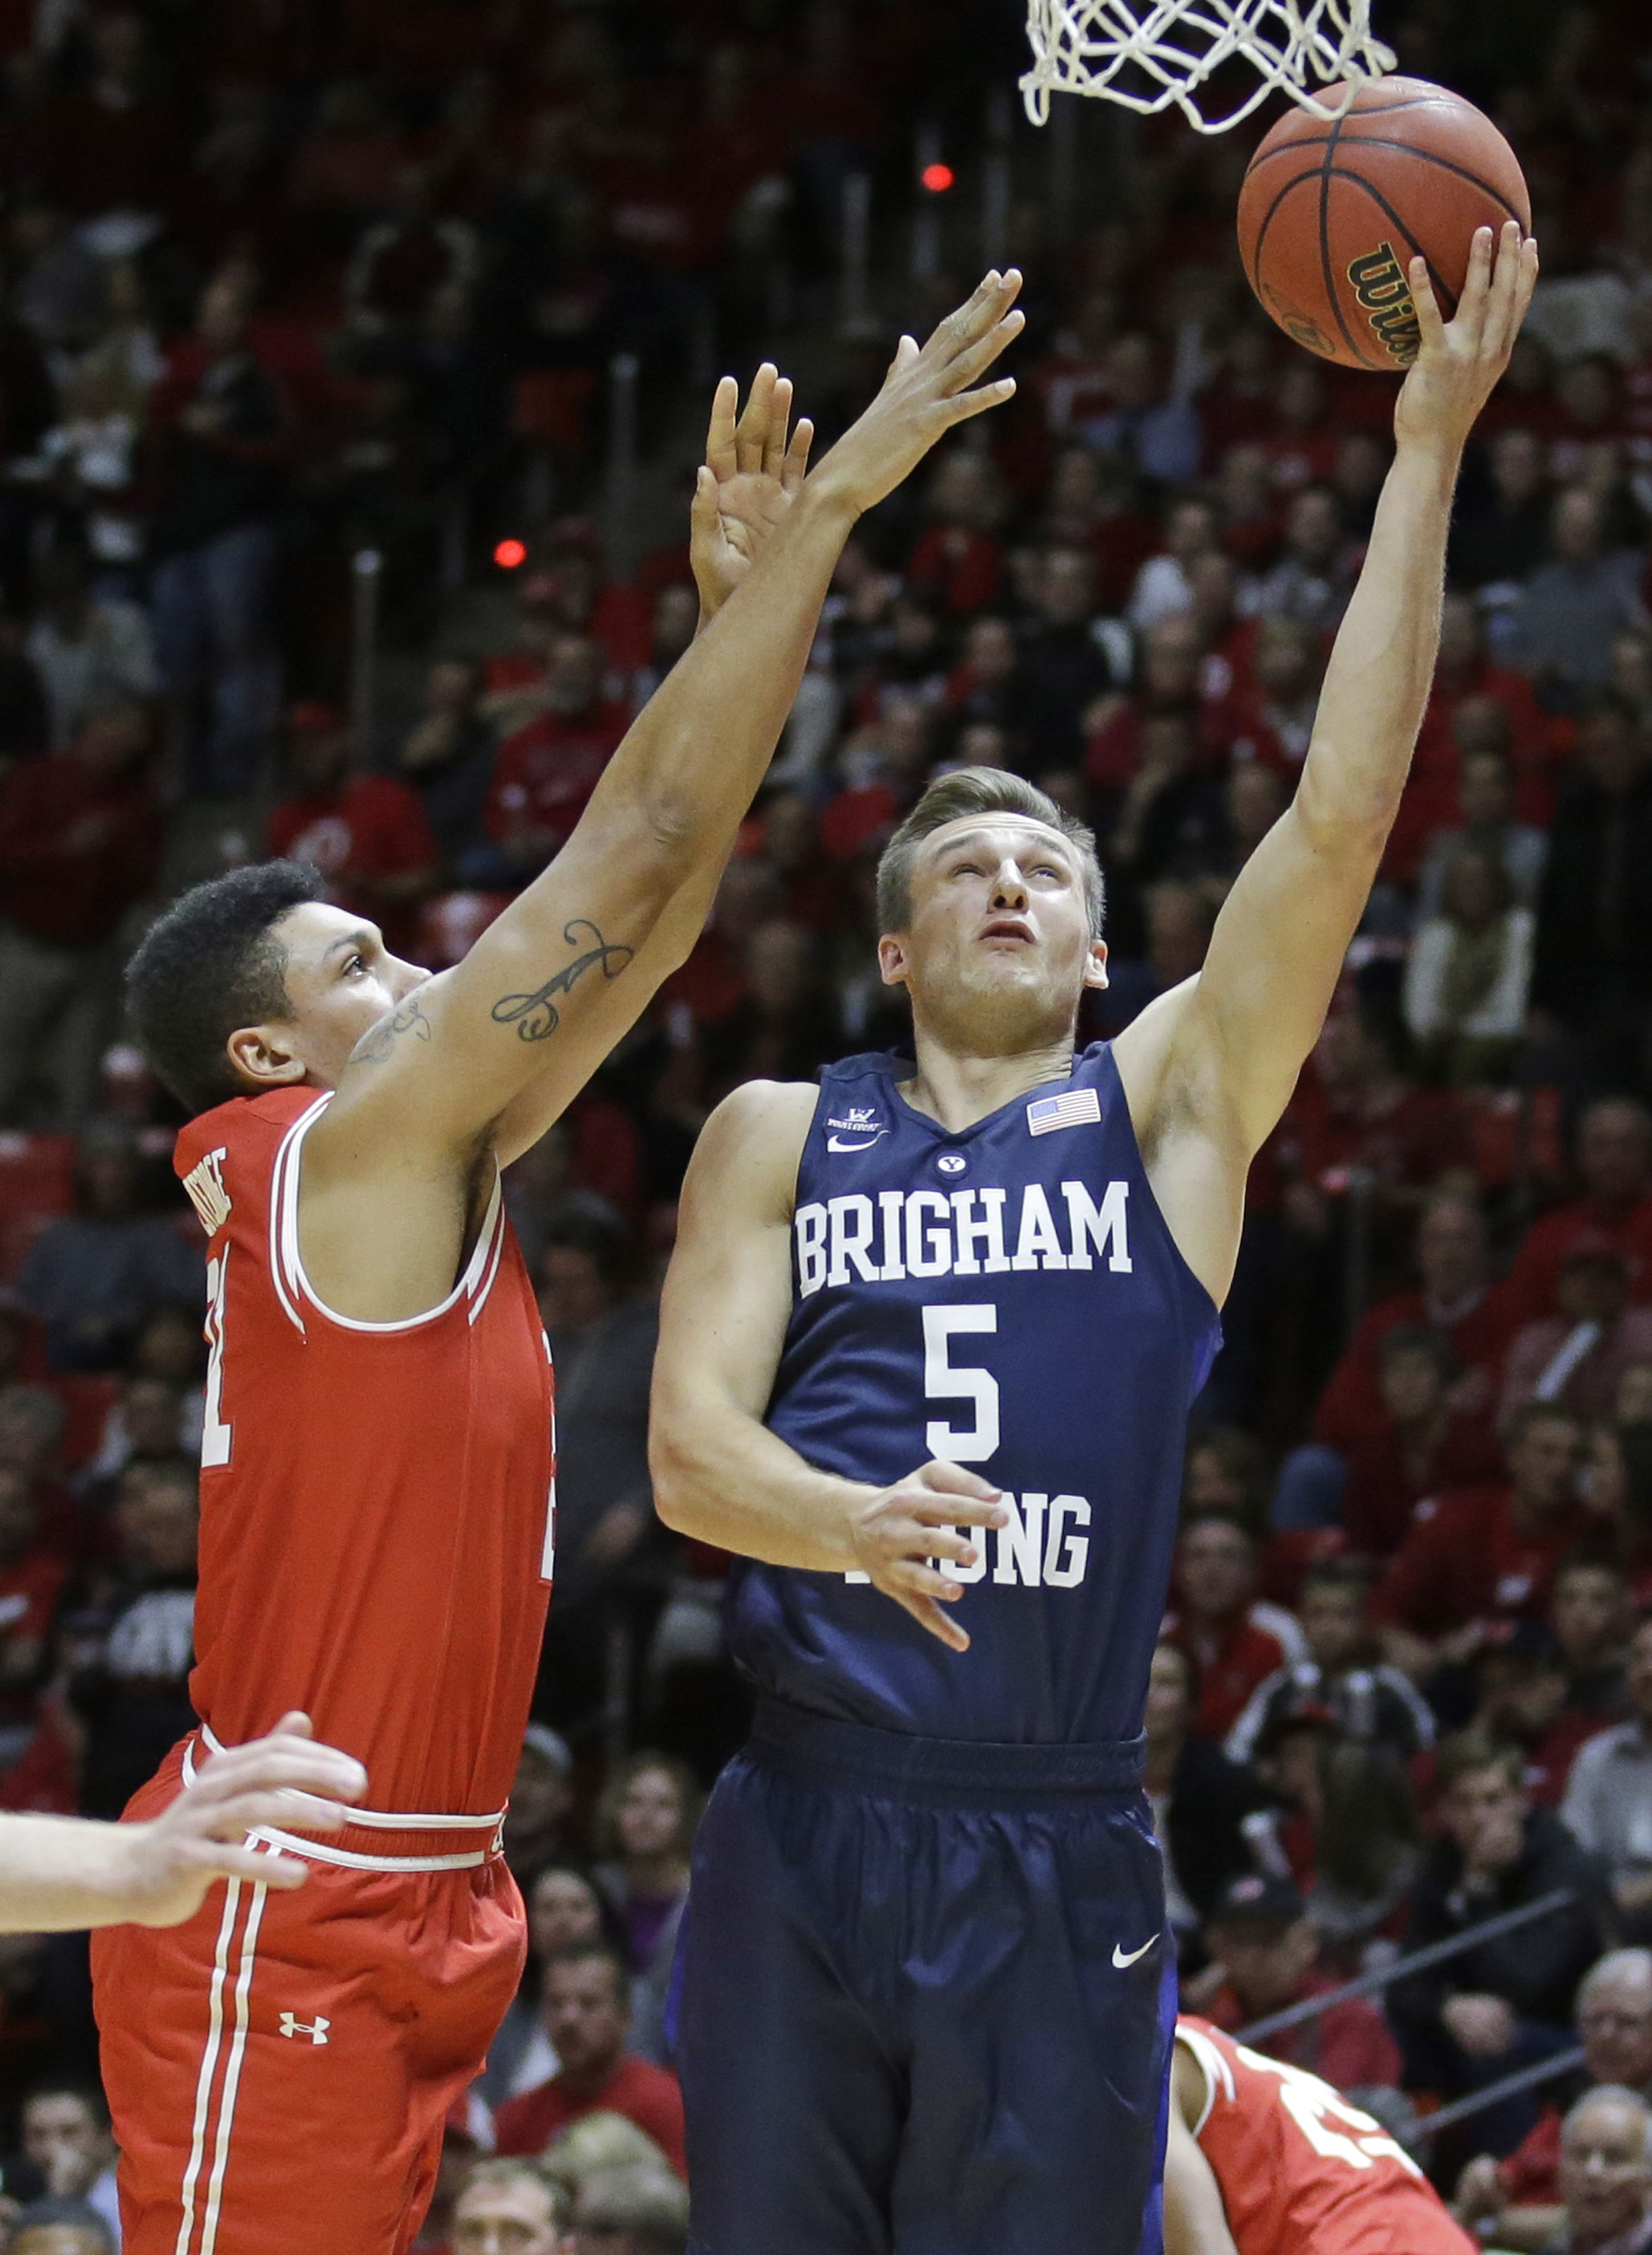 BYU guard Kyle Collinsworth (5) lays the ball up as Utah forward Jordan Loveridge, right, defends in the first half of an NCAA college basketball game Wednesday, Dec. 2, 2015, in Salt Lake City. (AP Photo/Rick Bowmer)